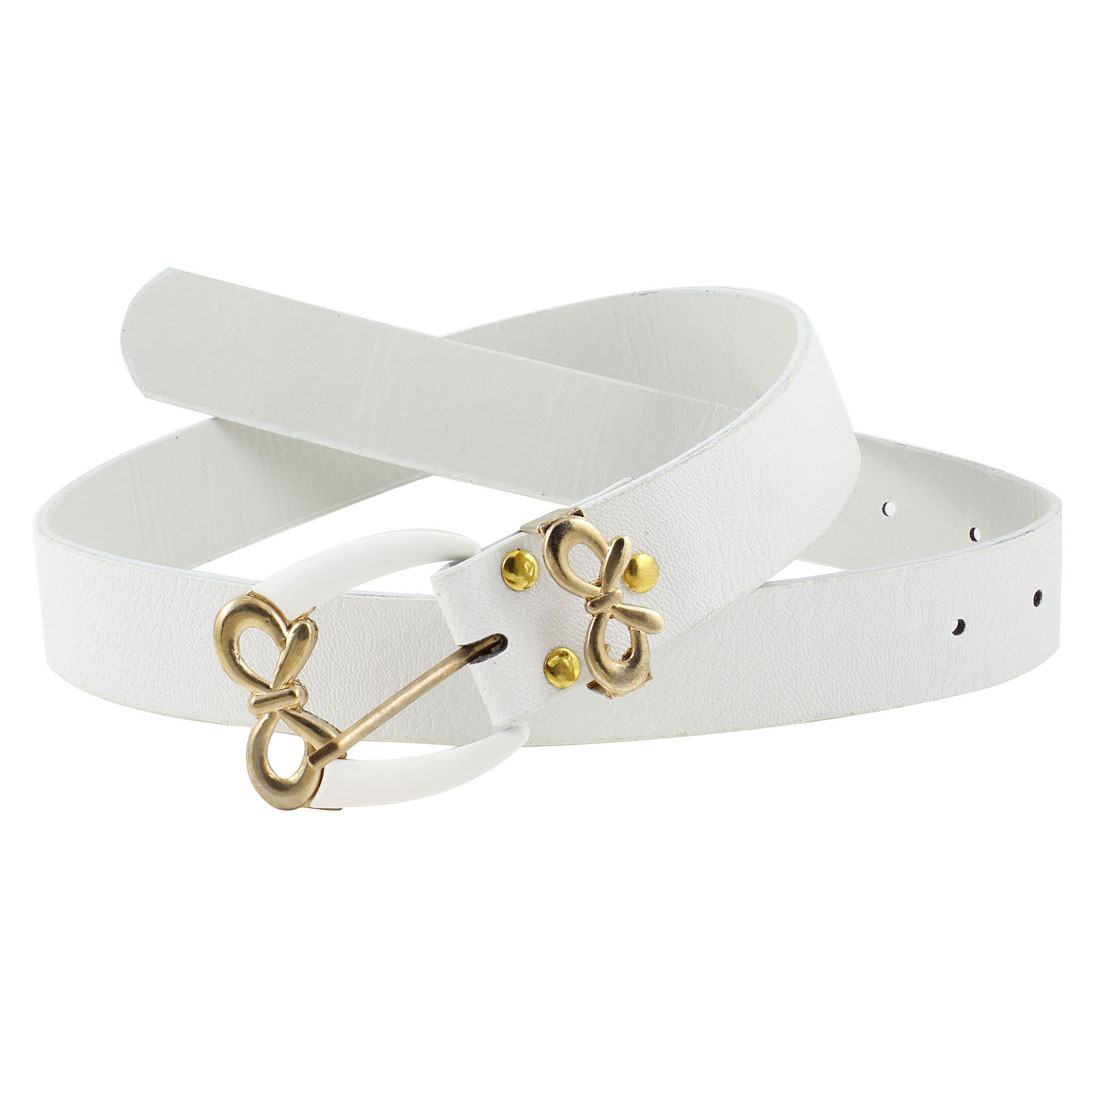 Lady Single Prong Buckle Faux Leather Adjustable Waist Belt 3.5cm Wide Off White